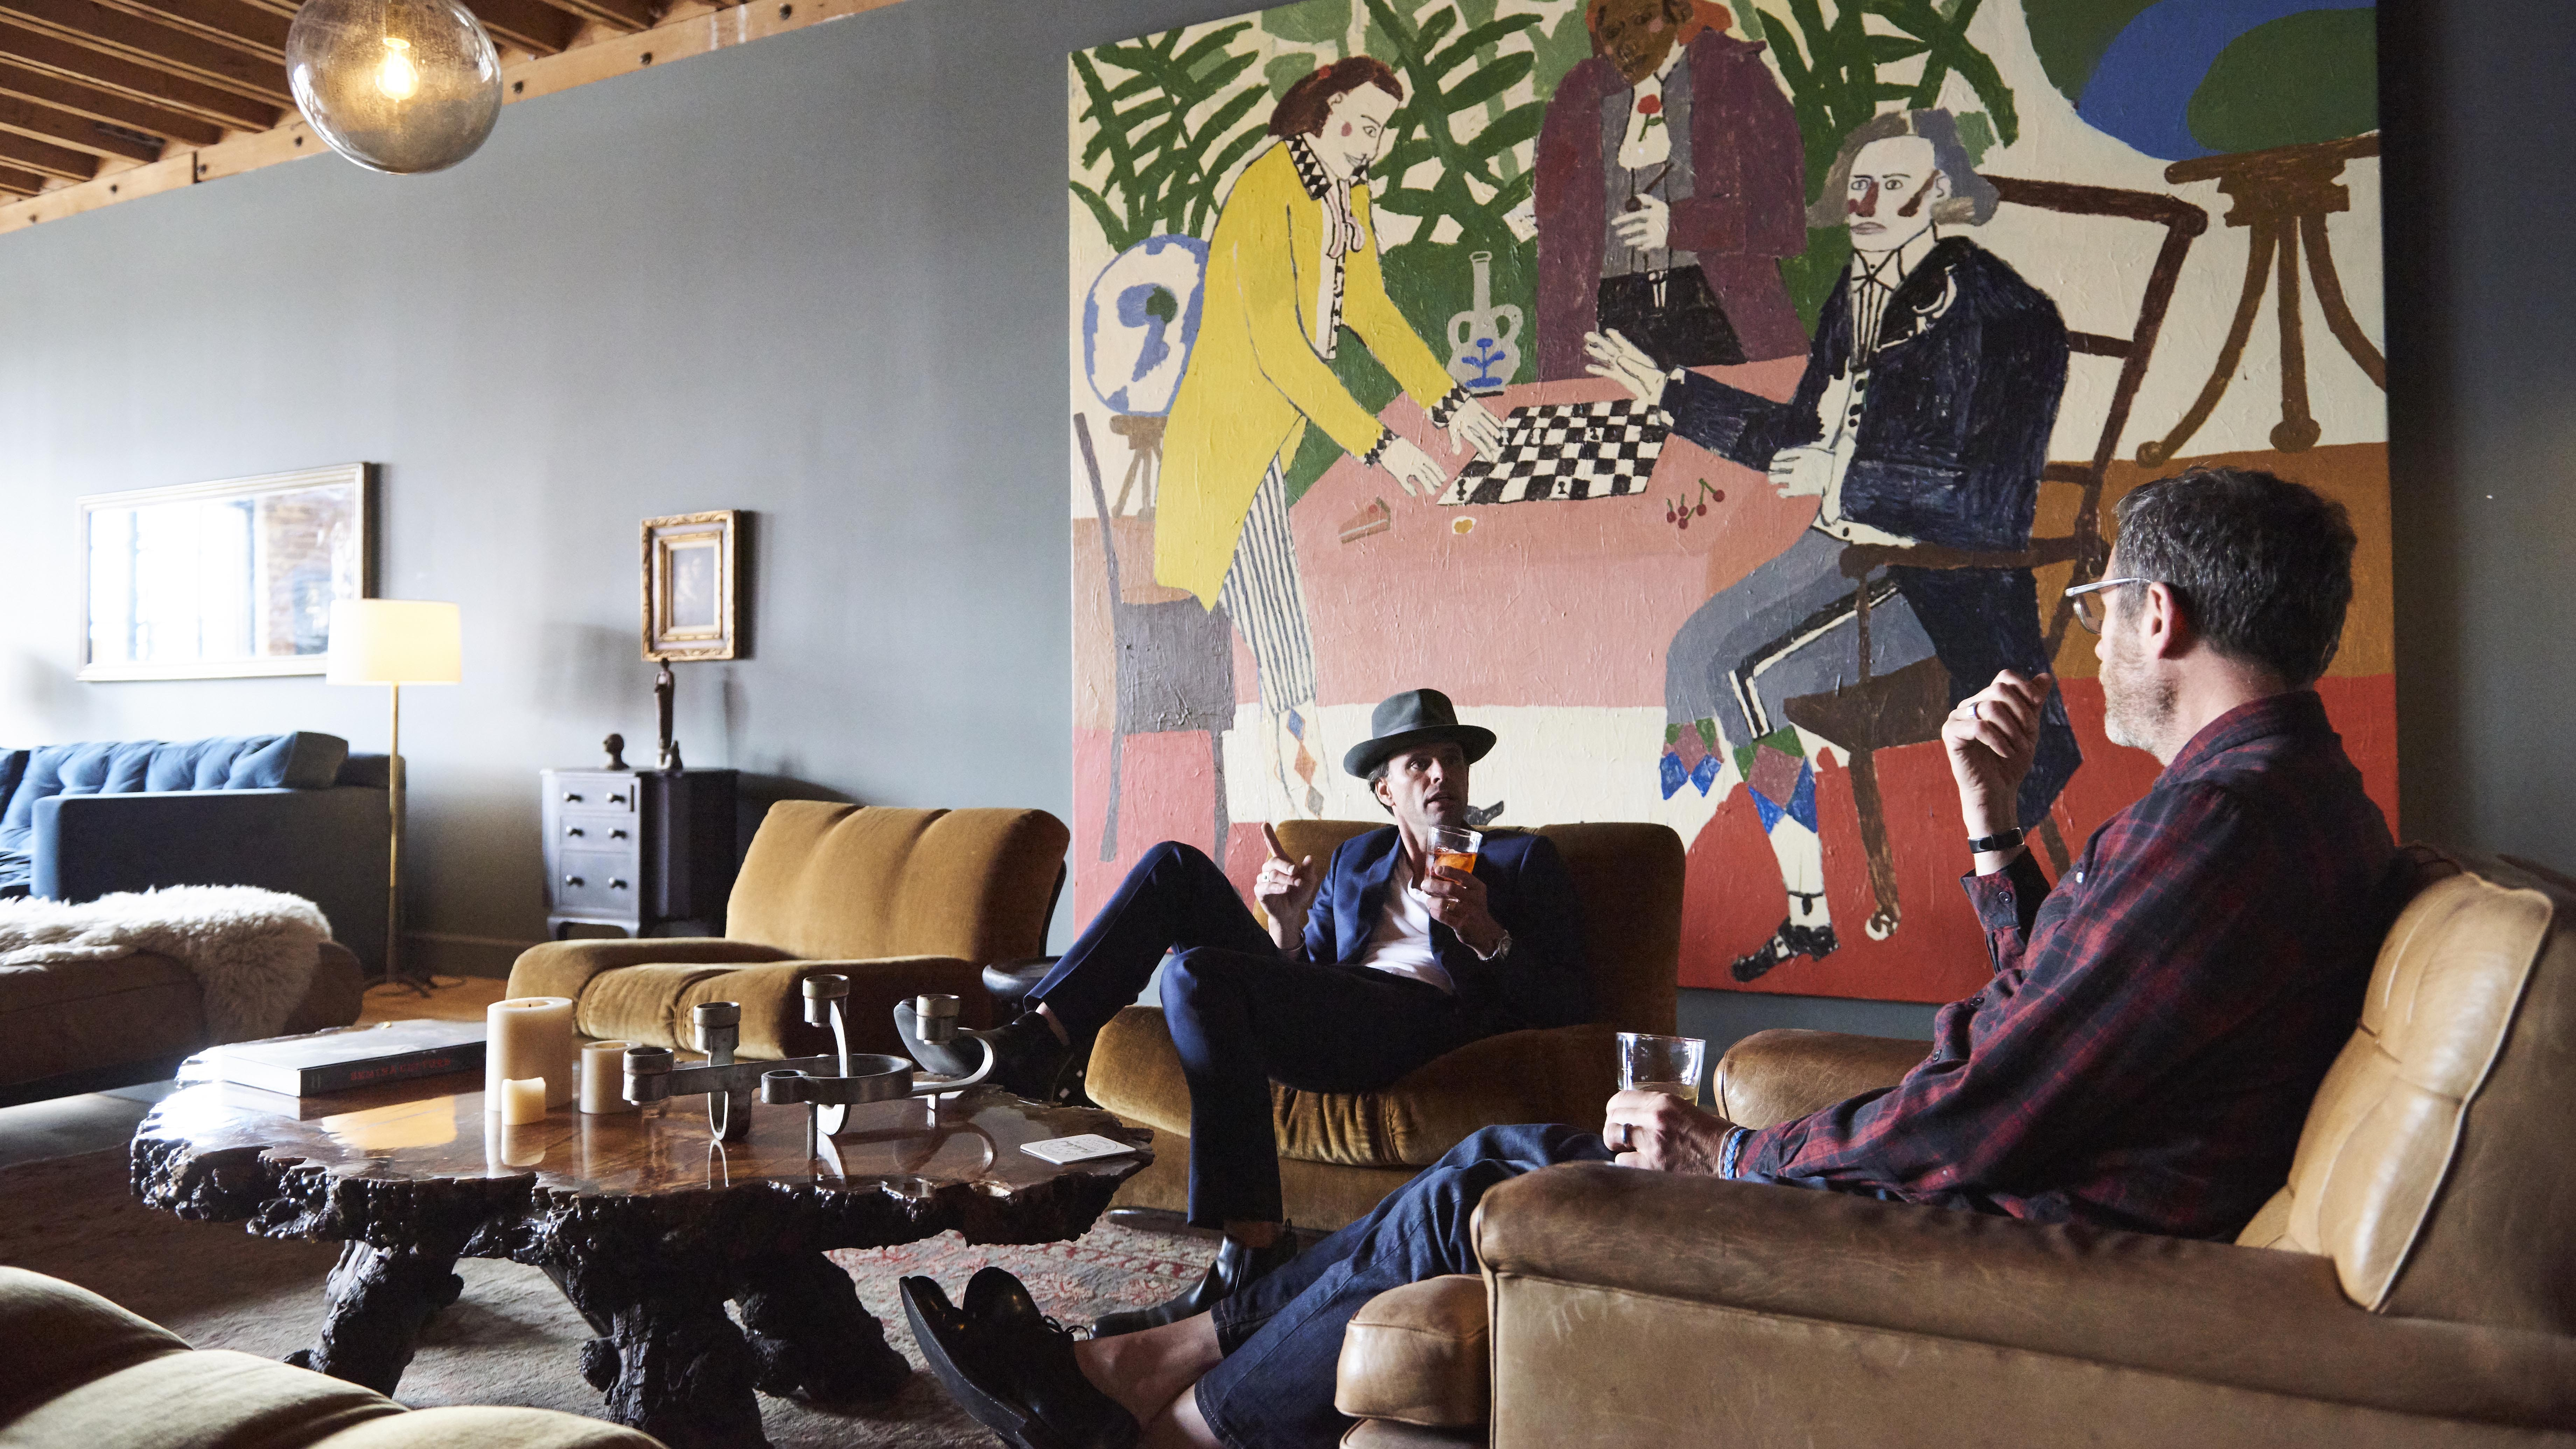 Kicking back with Walton Goggins in the Mullholland Room might be the best way to end a Route 66 road trip.